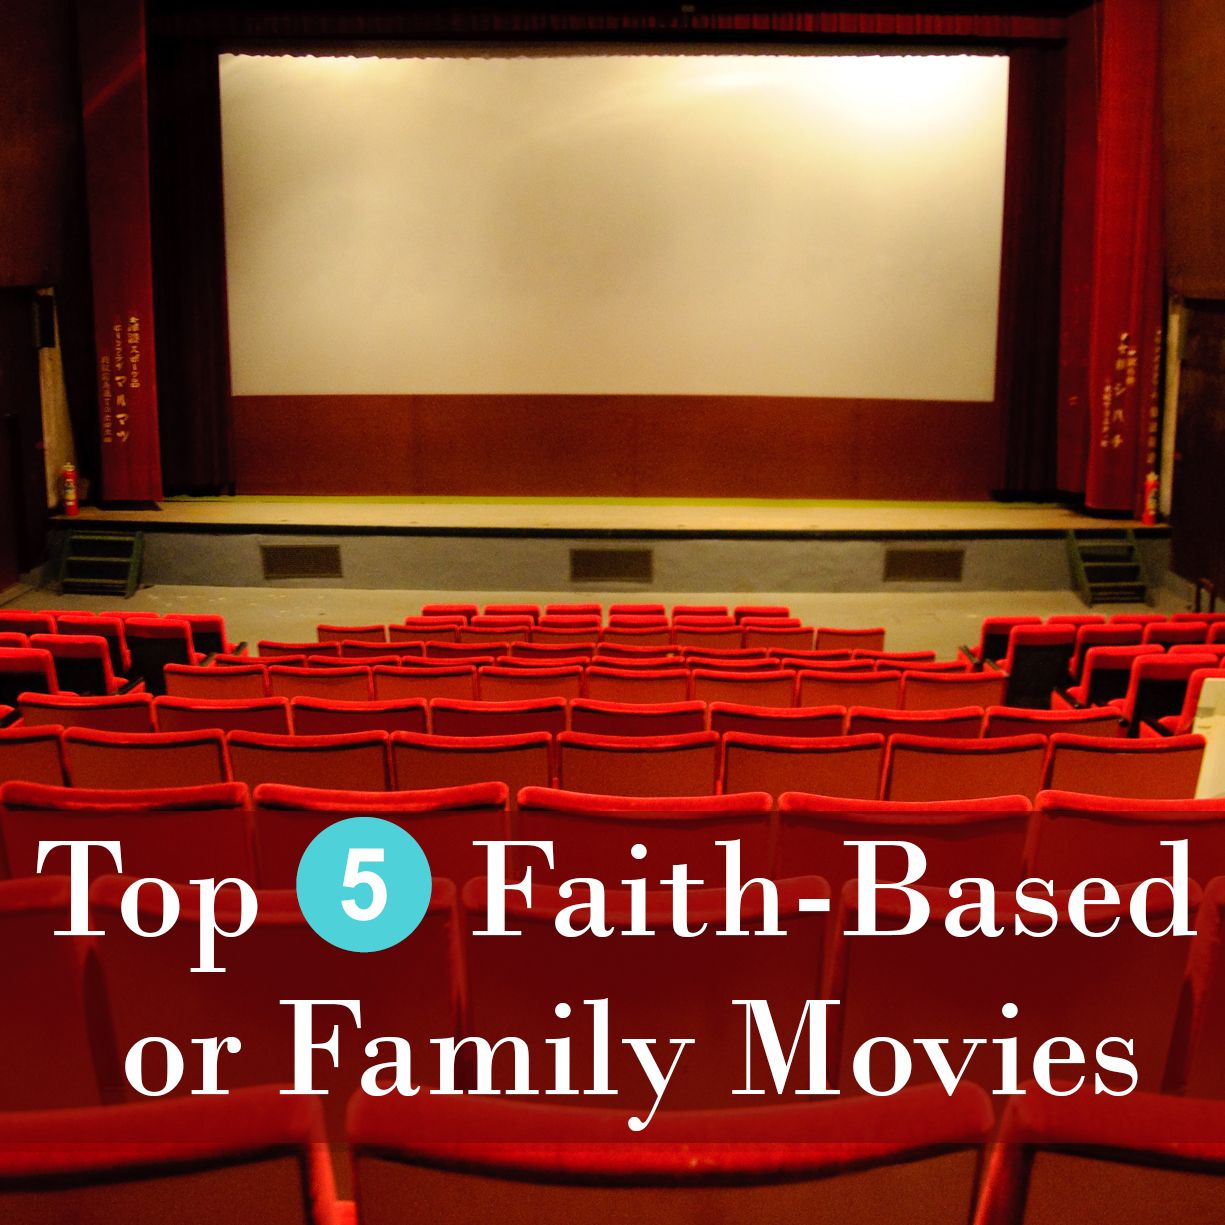 Take a look at the Top 5 Faith-Based or Family Movies according to Amazon.com.